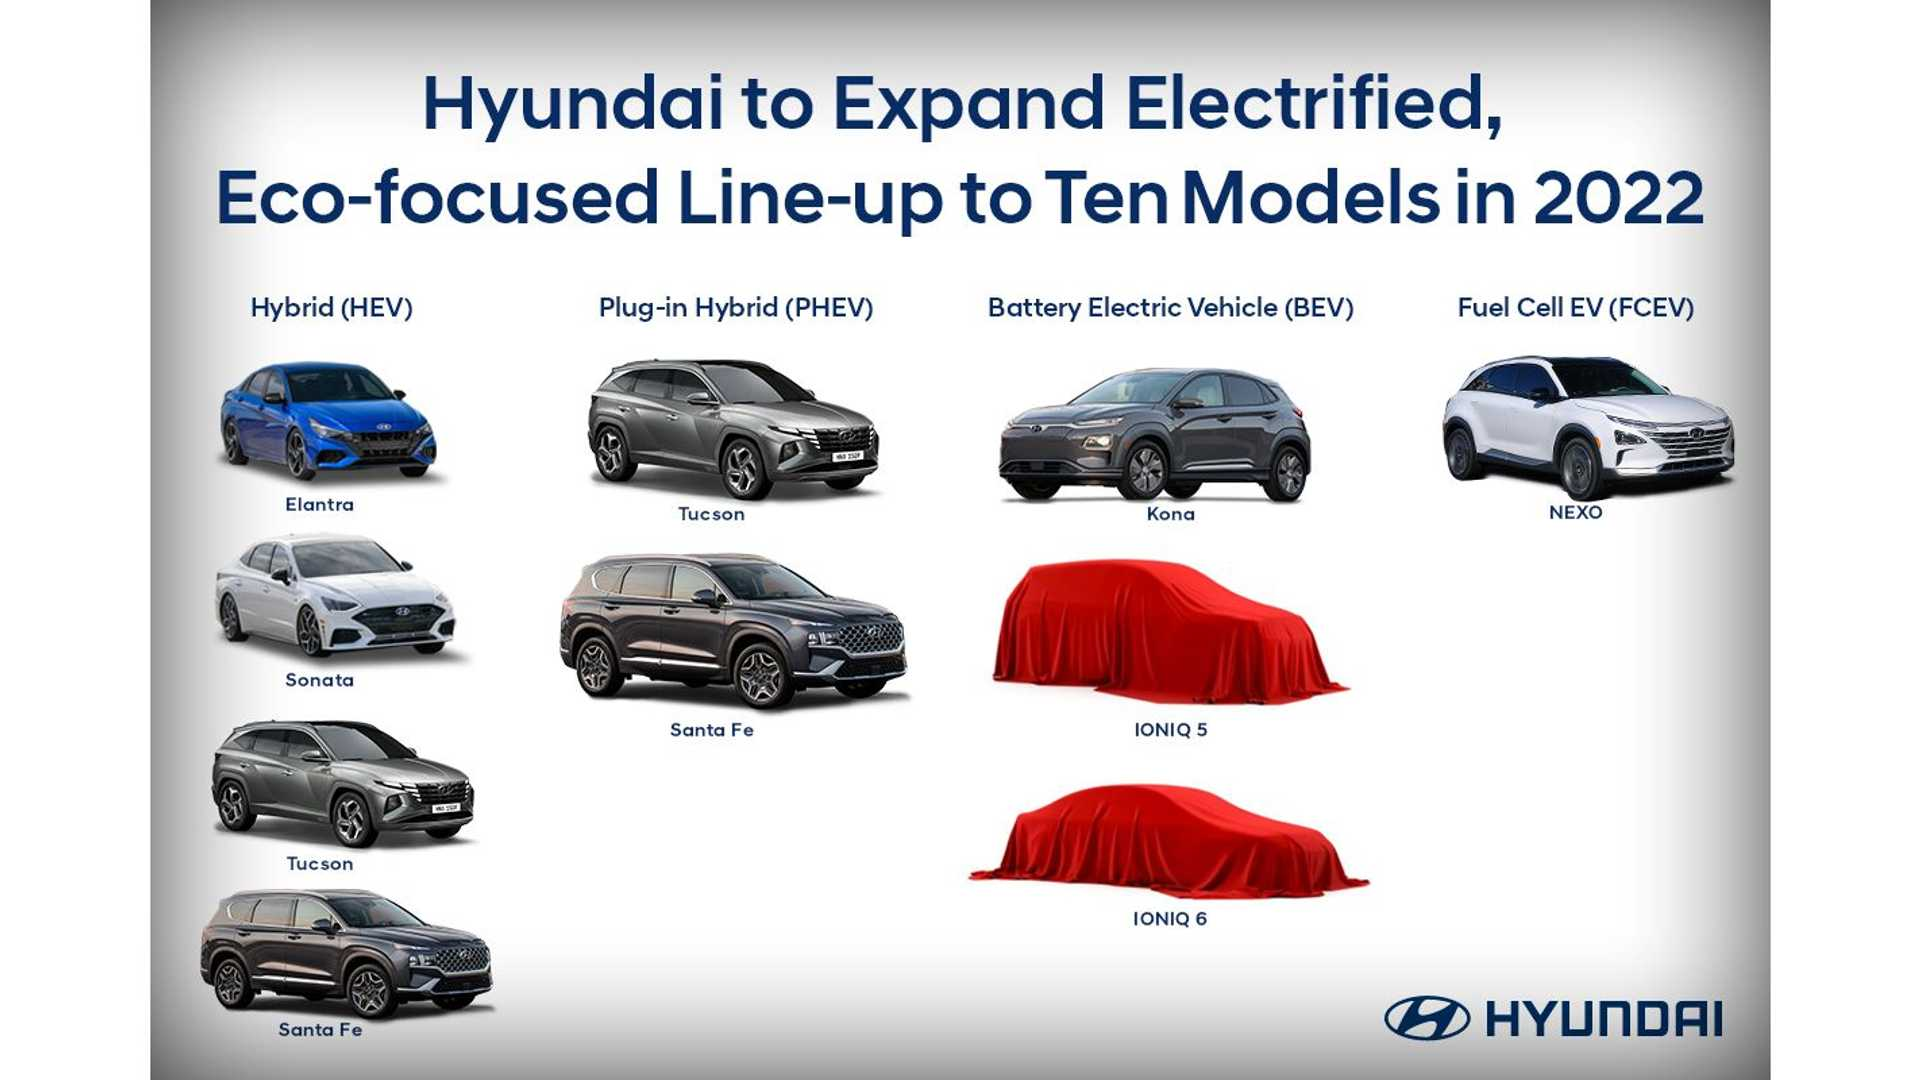 Hyundai Will Have 10 Eco Models In The US By End Of 2022